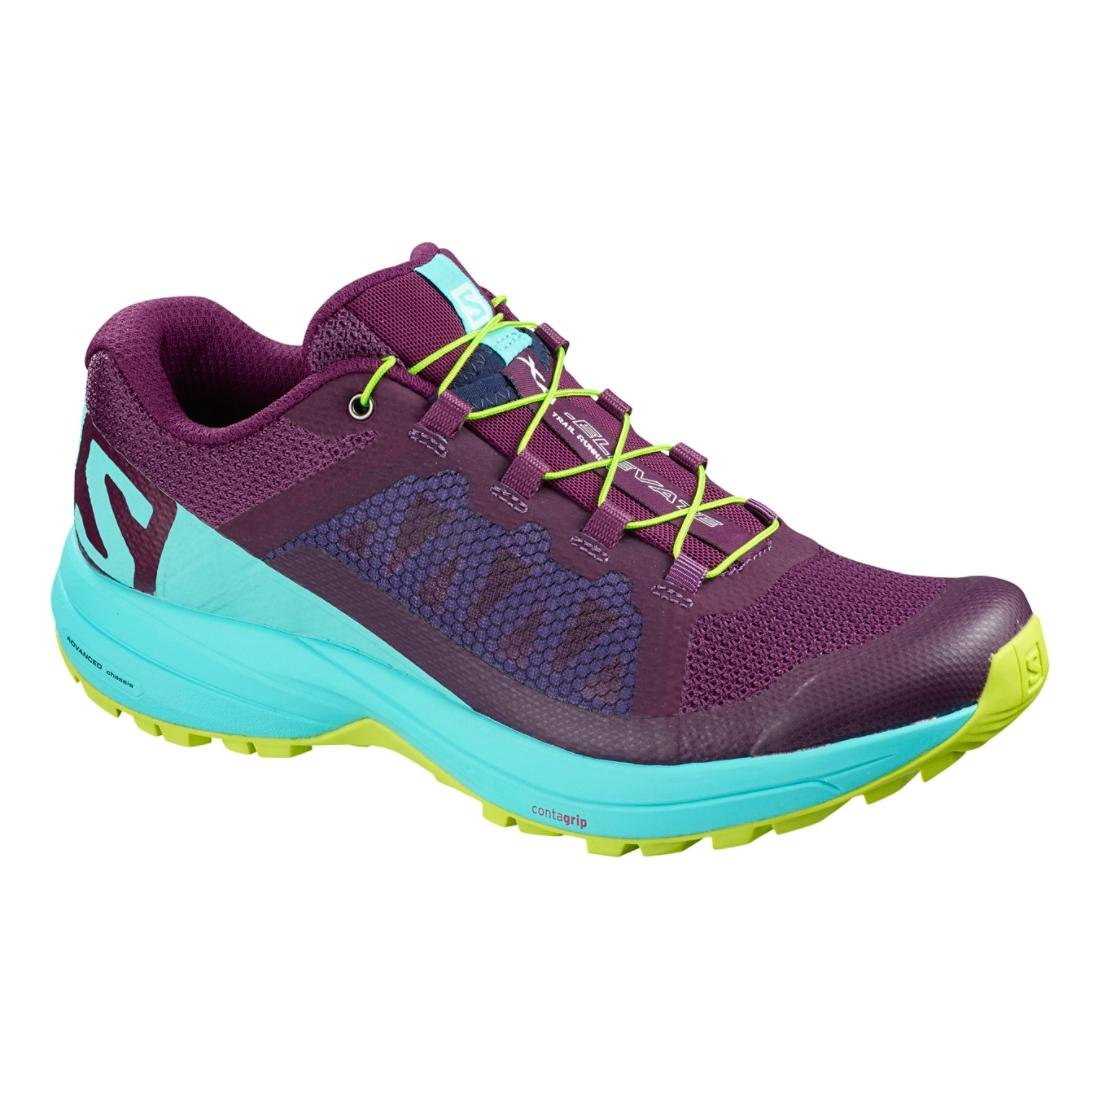 0767b6897b1b9 Salomon XA Elevate Running Shoe - Women's Dark Purple/Blue Curacao/Acid  Lime 11